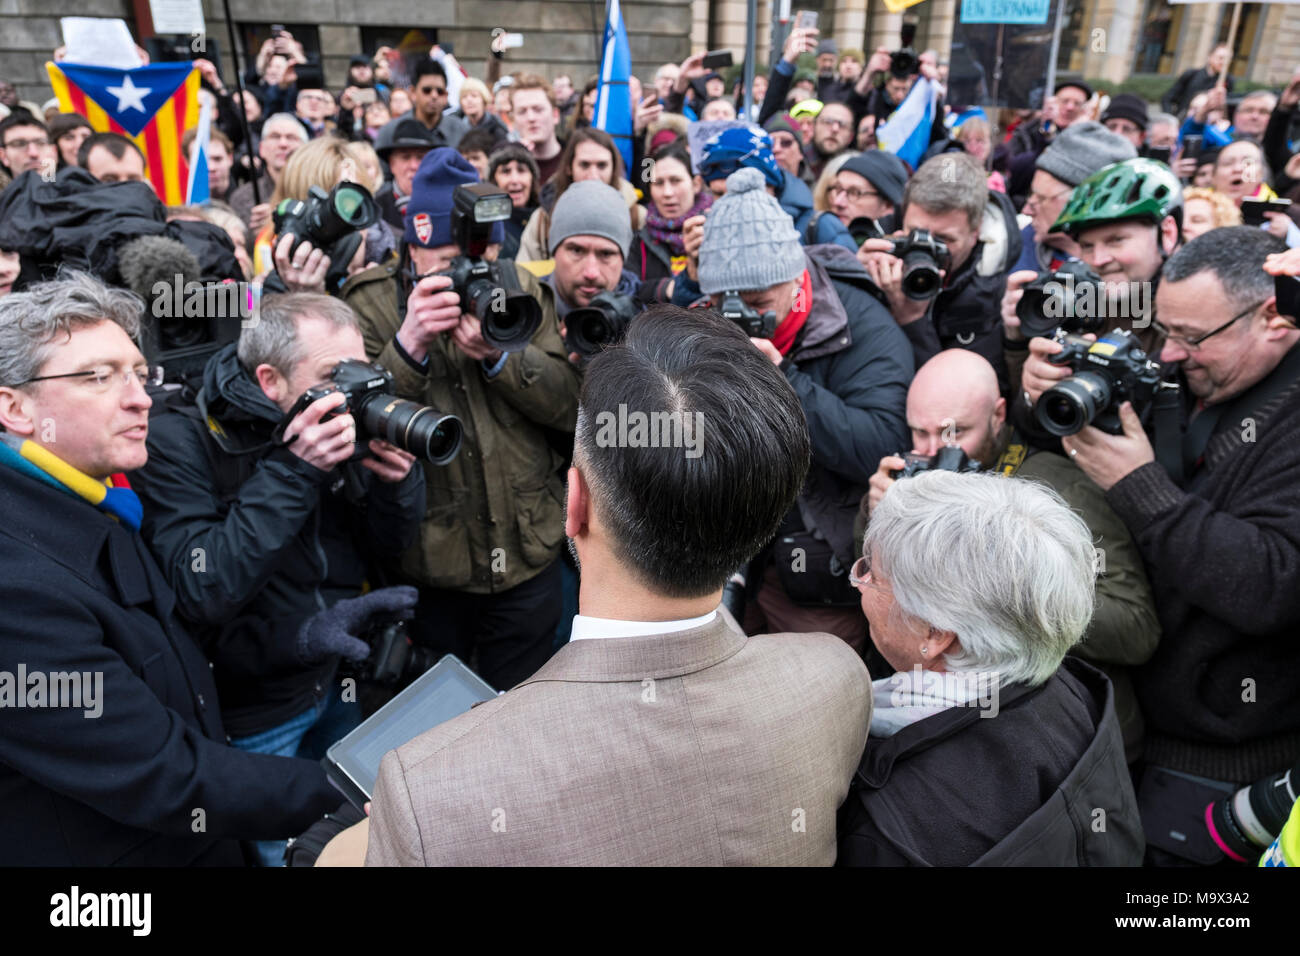 Edinburgh, Scotland,UK. 28 March 2018.  Clara Ponsati  addressing supported after leaving Edinburgh Sheriff Court following her hearing. Ponsati faces extradition to Spain to face charges of rebellion over her support of Catalan Independence. Credit: Iain Masterton/Alamy Live News - Stock Image